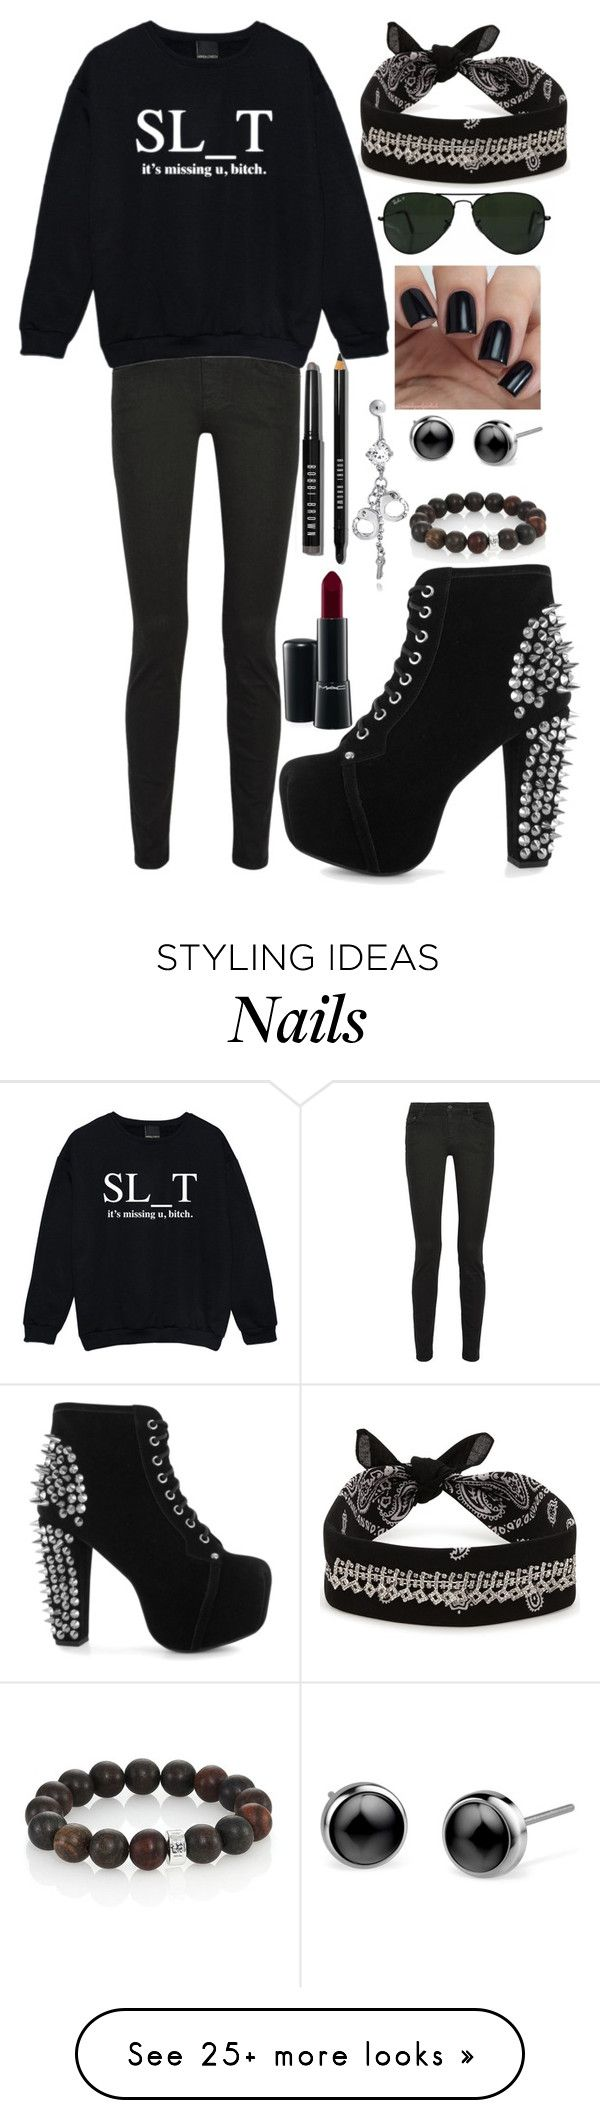 """""""Arzaylea Fight"""" by never-ending-dreamer on Polyvore featuring Bobbi Brown Cosmetics, Ray-Ban, Proenza Schouler, Kale, Fallon, Jeffrey Campbell, MAC Cosmetics, Nest and Bling Jewelry"""